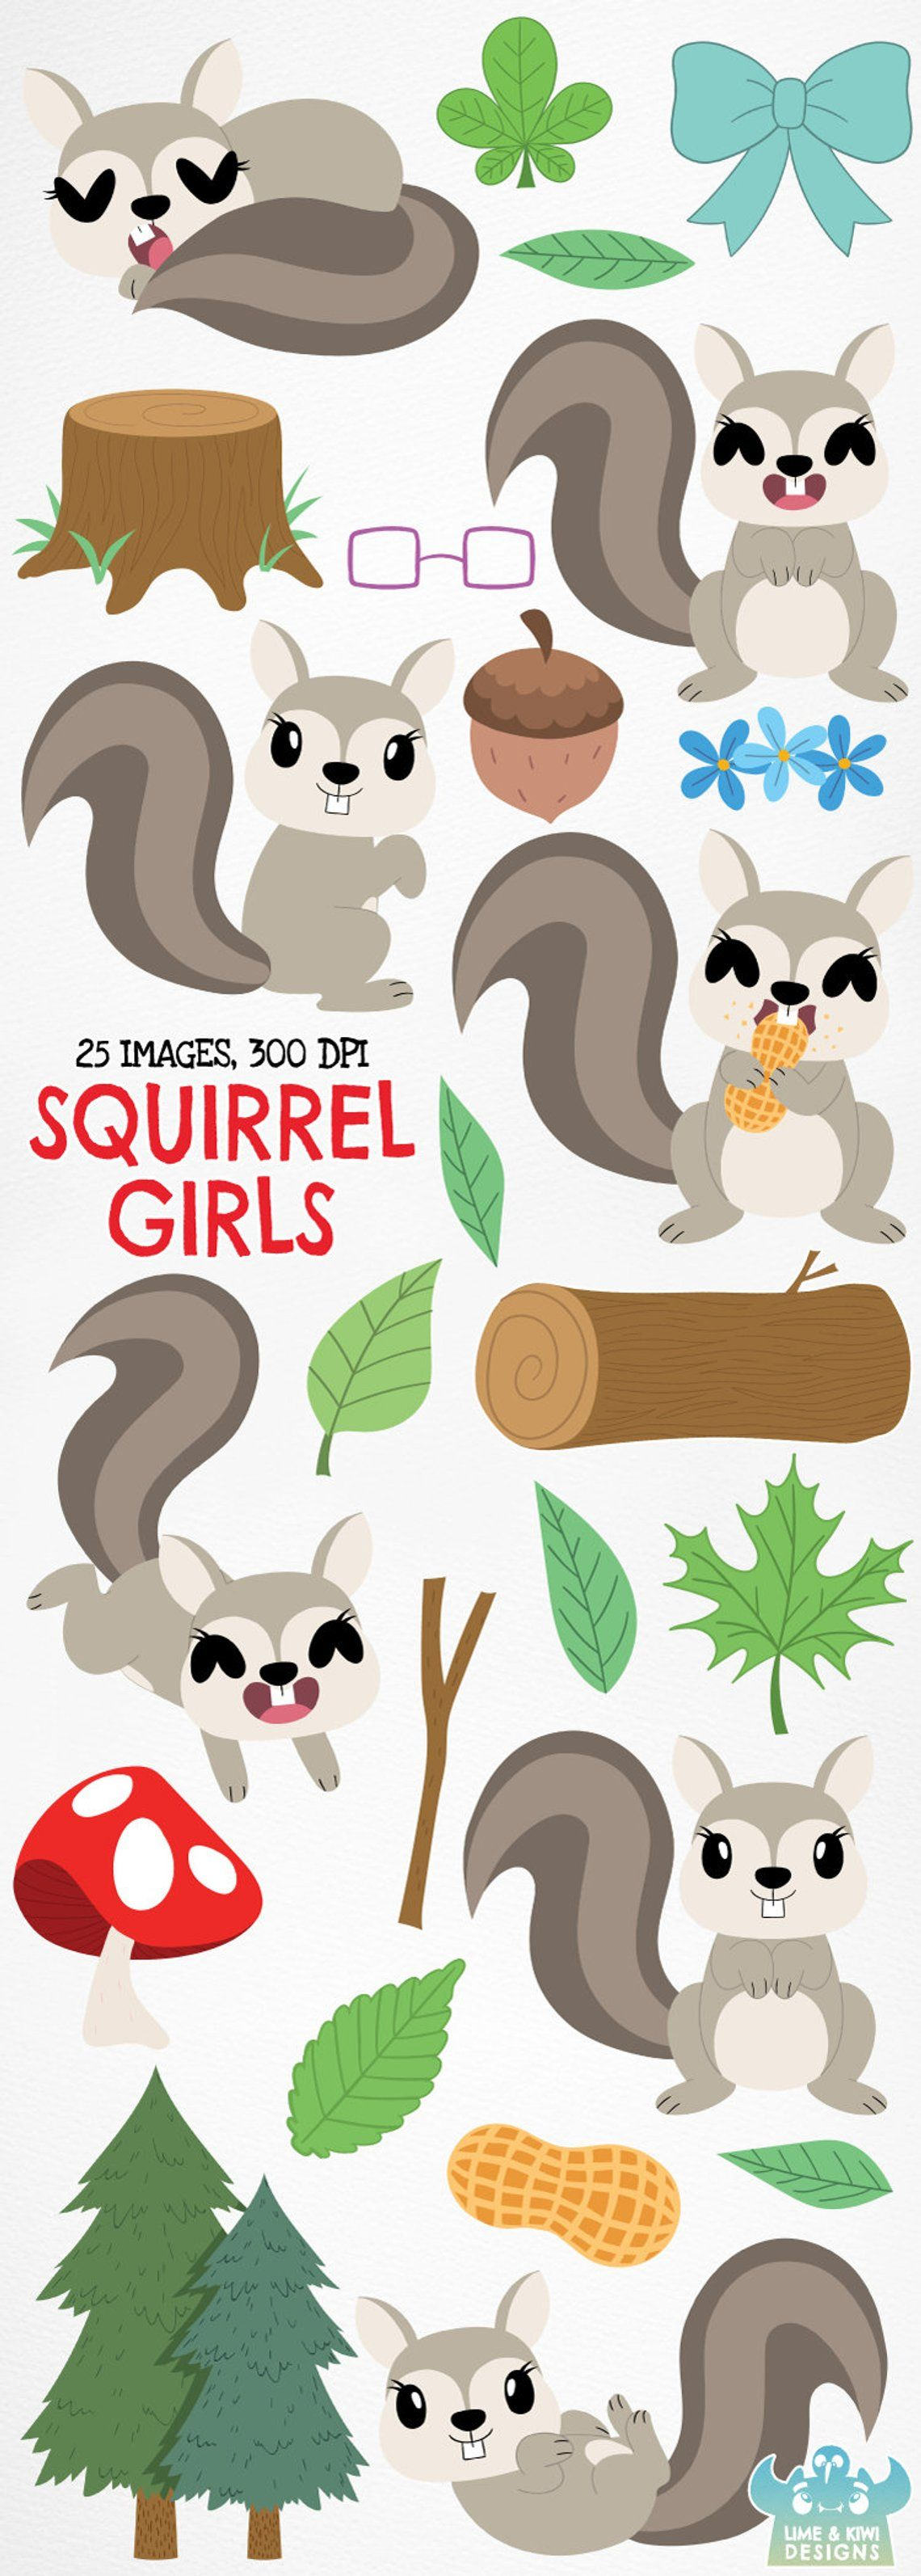 Squirrel Girls Clipart Instant Download Vector Art Woodland Forest Animals Trees Plants Leaves Log Foliage Leaf Mushroom Nuts Clip Art Squirrel Girl Girl Clipart